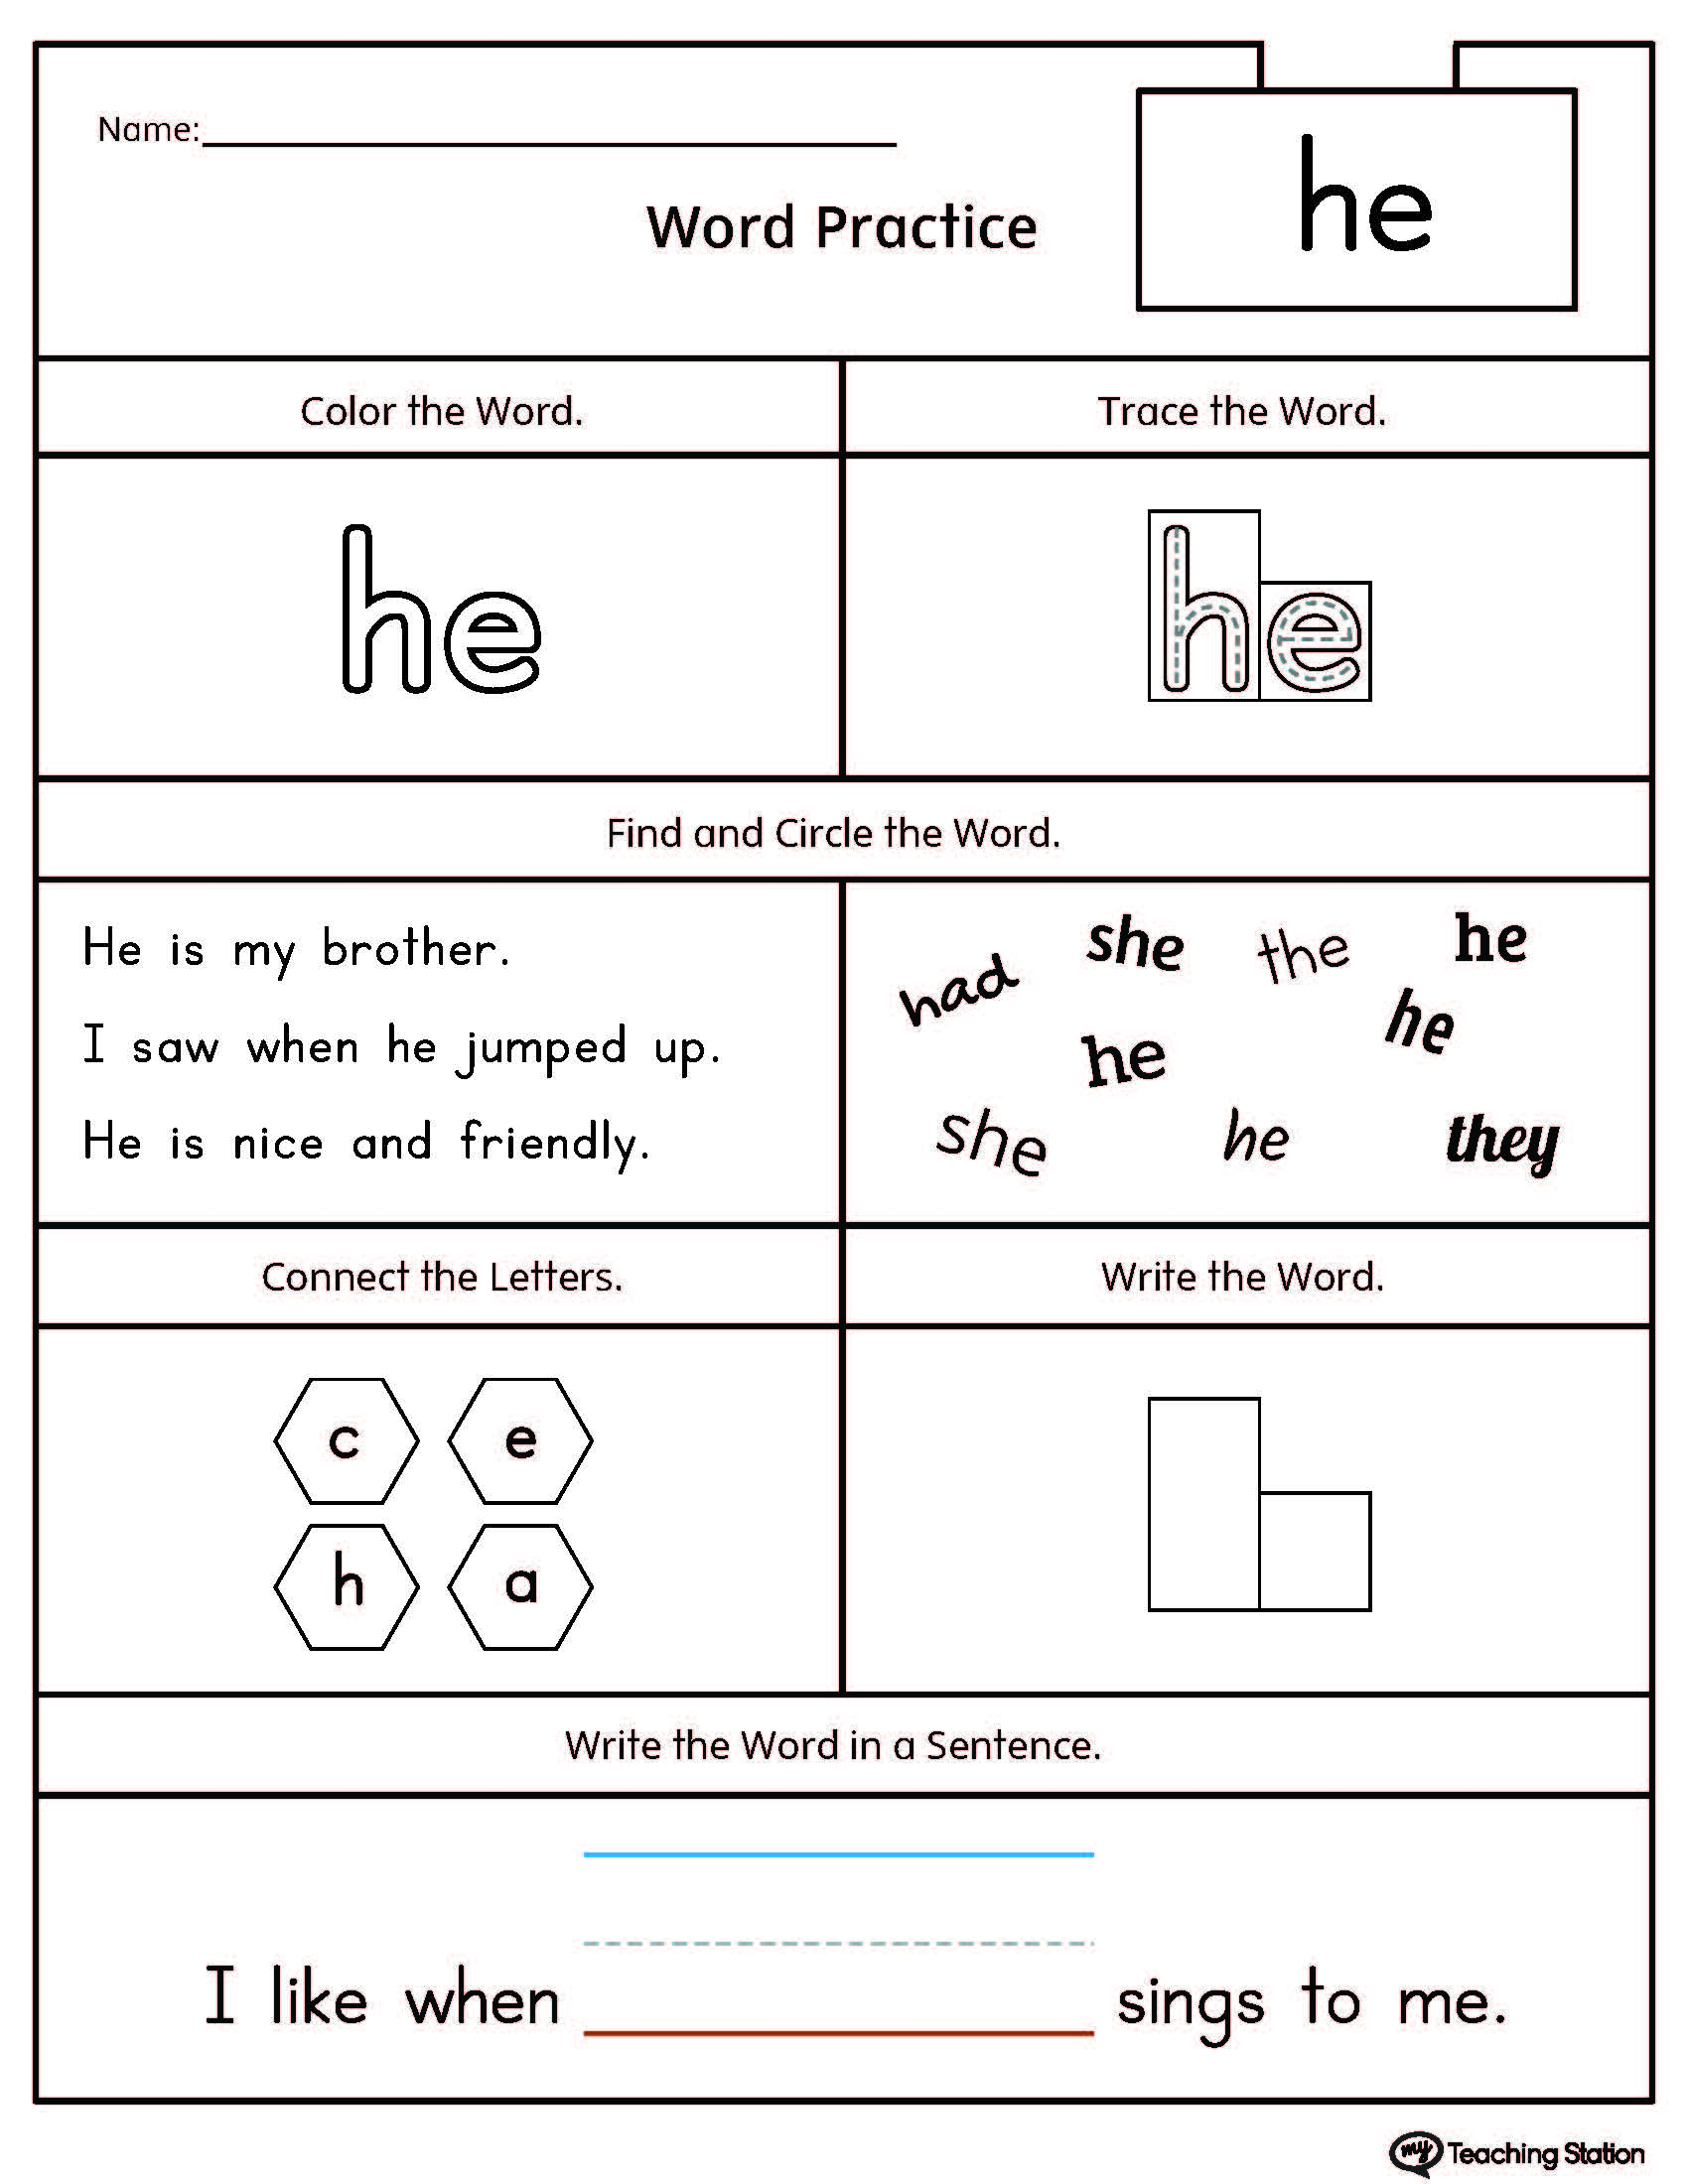 Sight Words Practice Word Search You Two We All Am